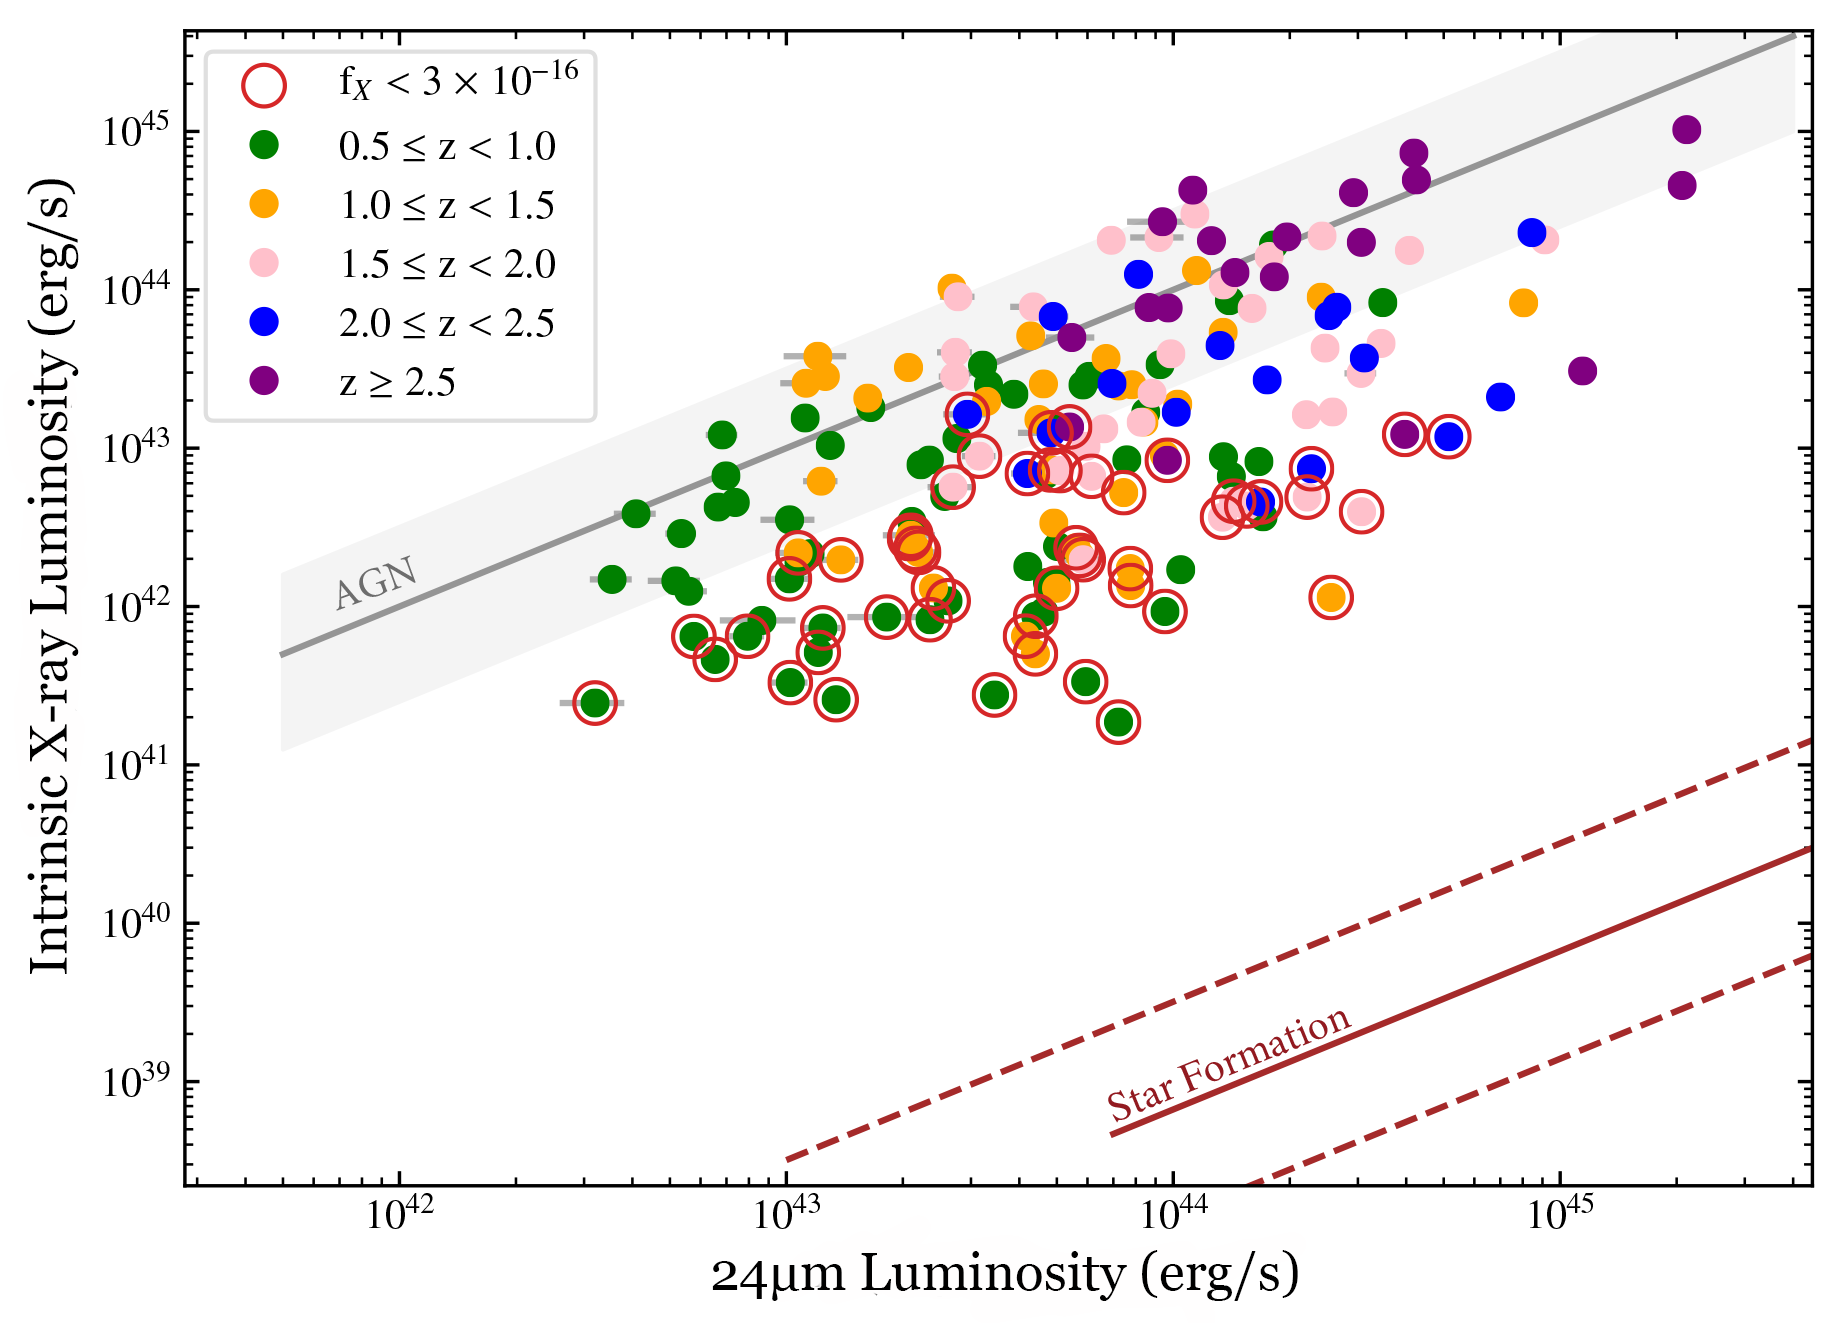 Figure showing the faintest AGN in the sample do not appear to have mid-IR emission coming from solely AGN or star formation